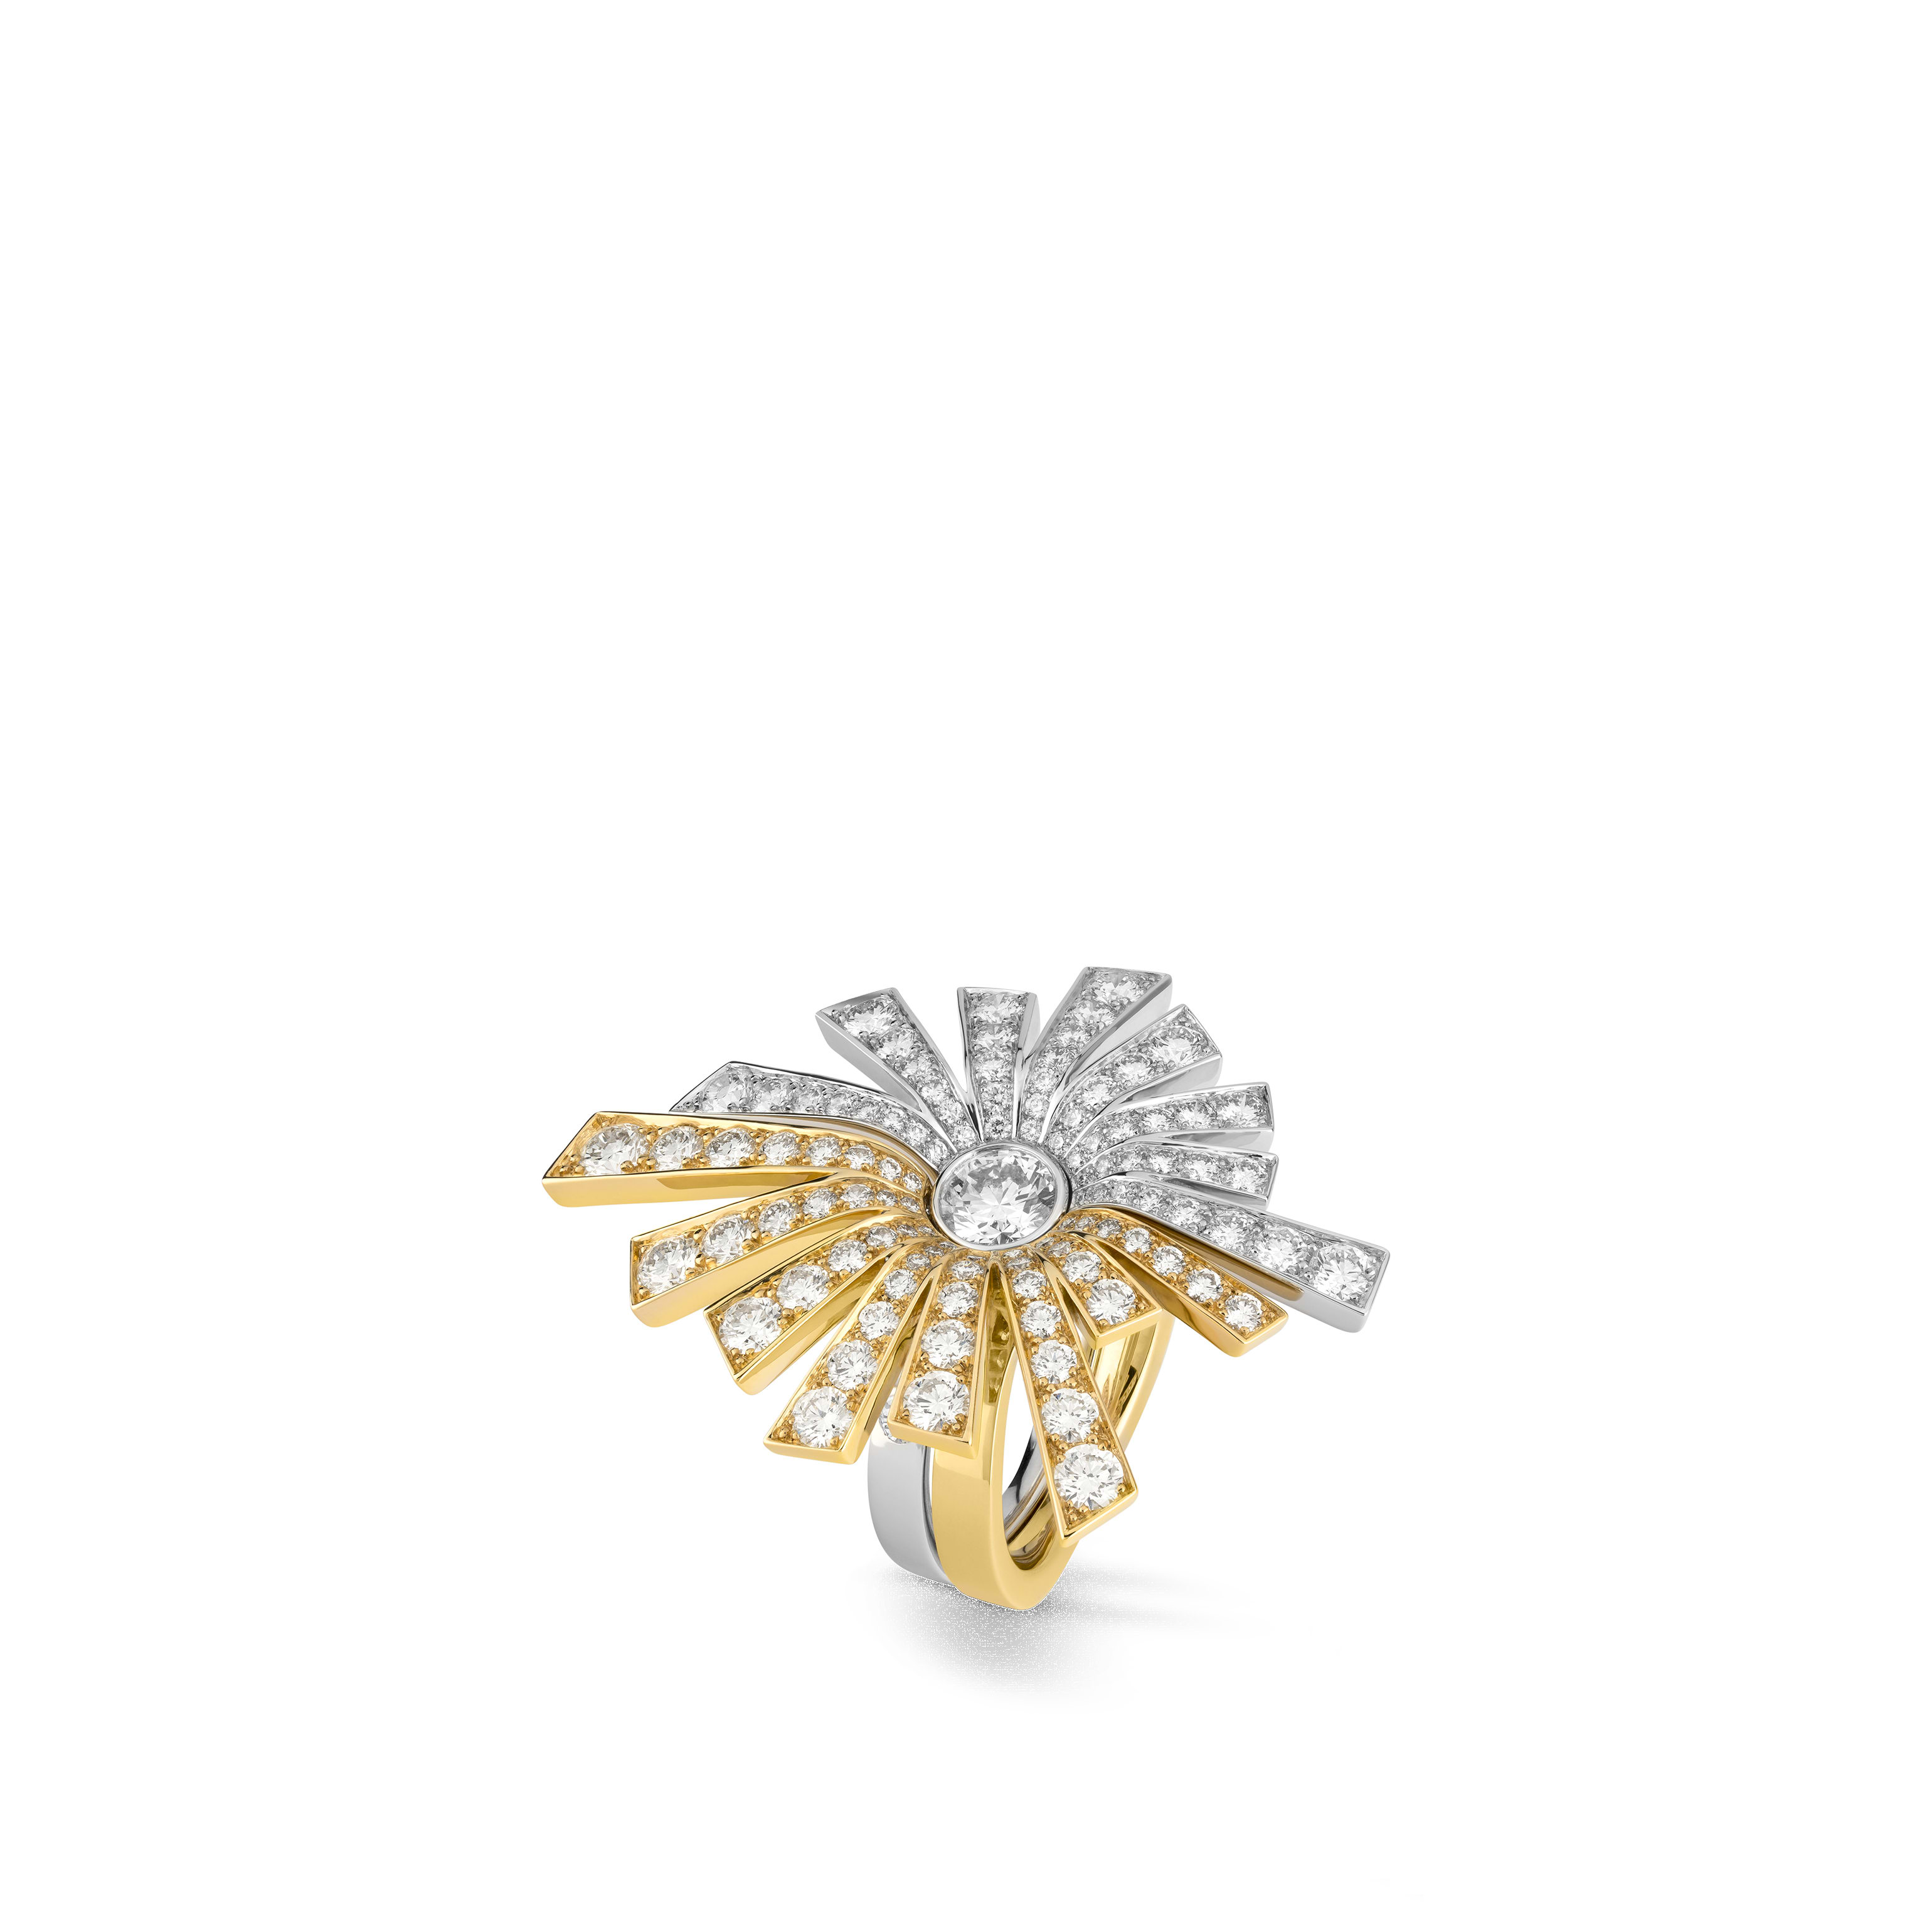 Soleil de CHANEL transformable ring - 18K white and yellow gold, diamonds - CHANEL - Default view - see standard sized version